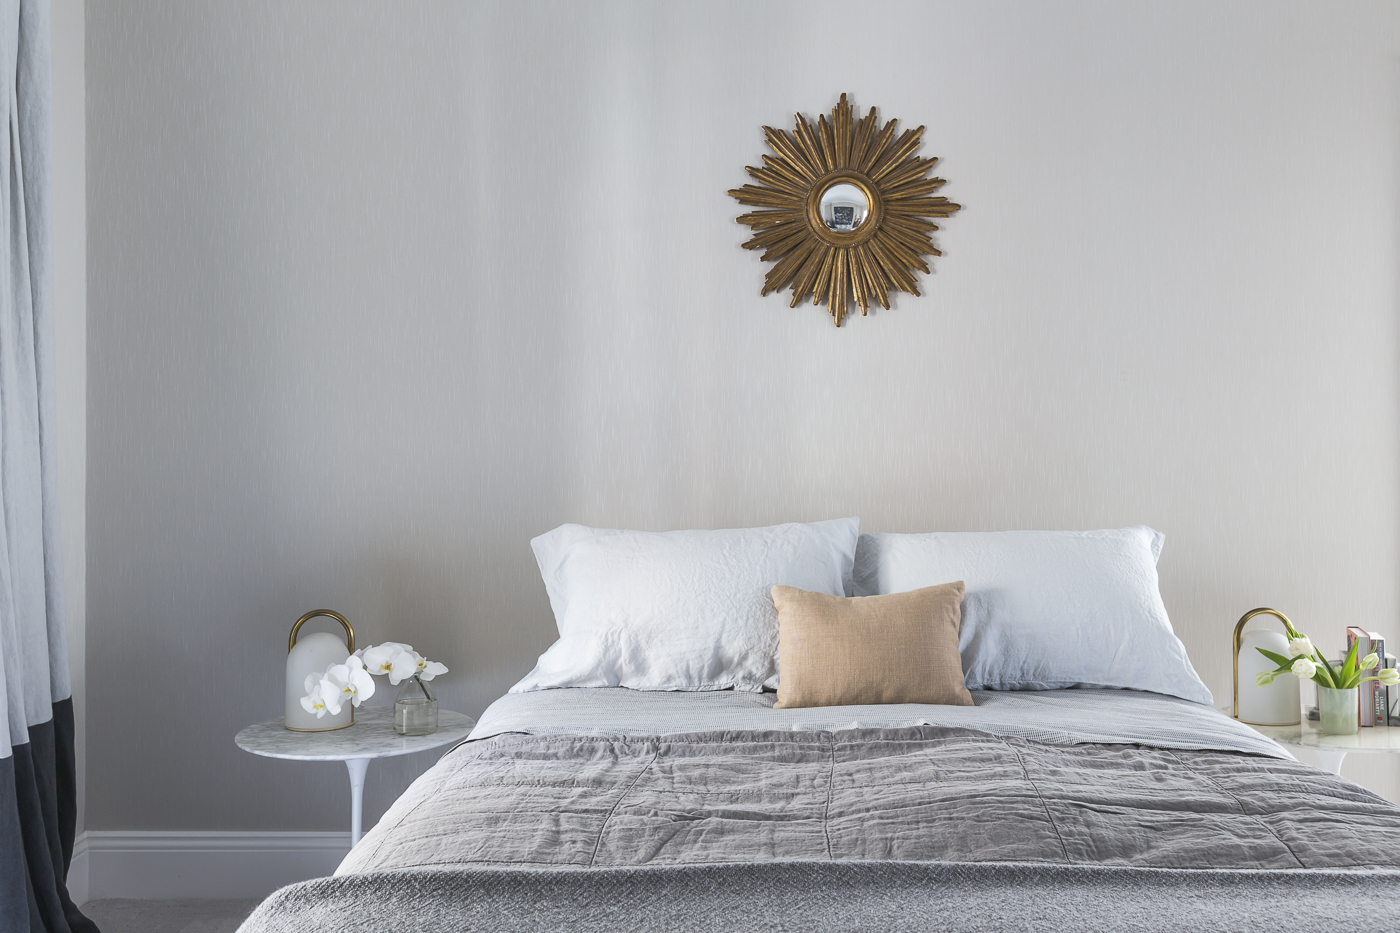 The soft and elegant master bedroom is highlighted by antique pieces, dramatic artwork and gold accessories.